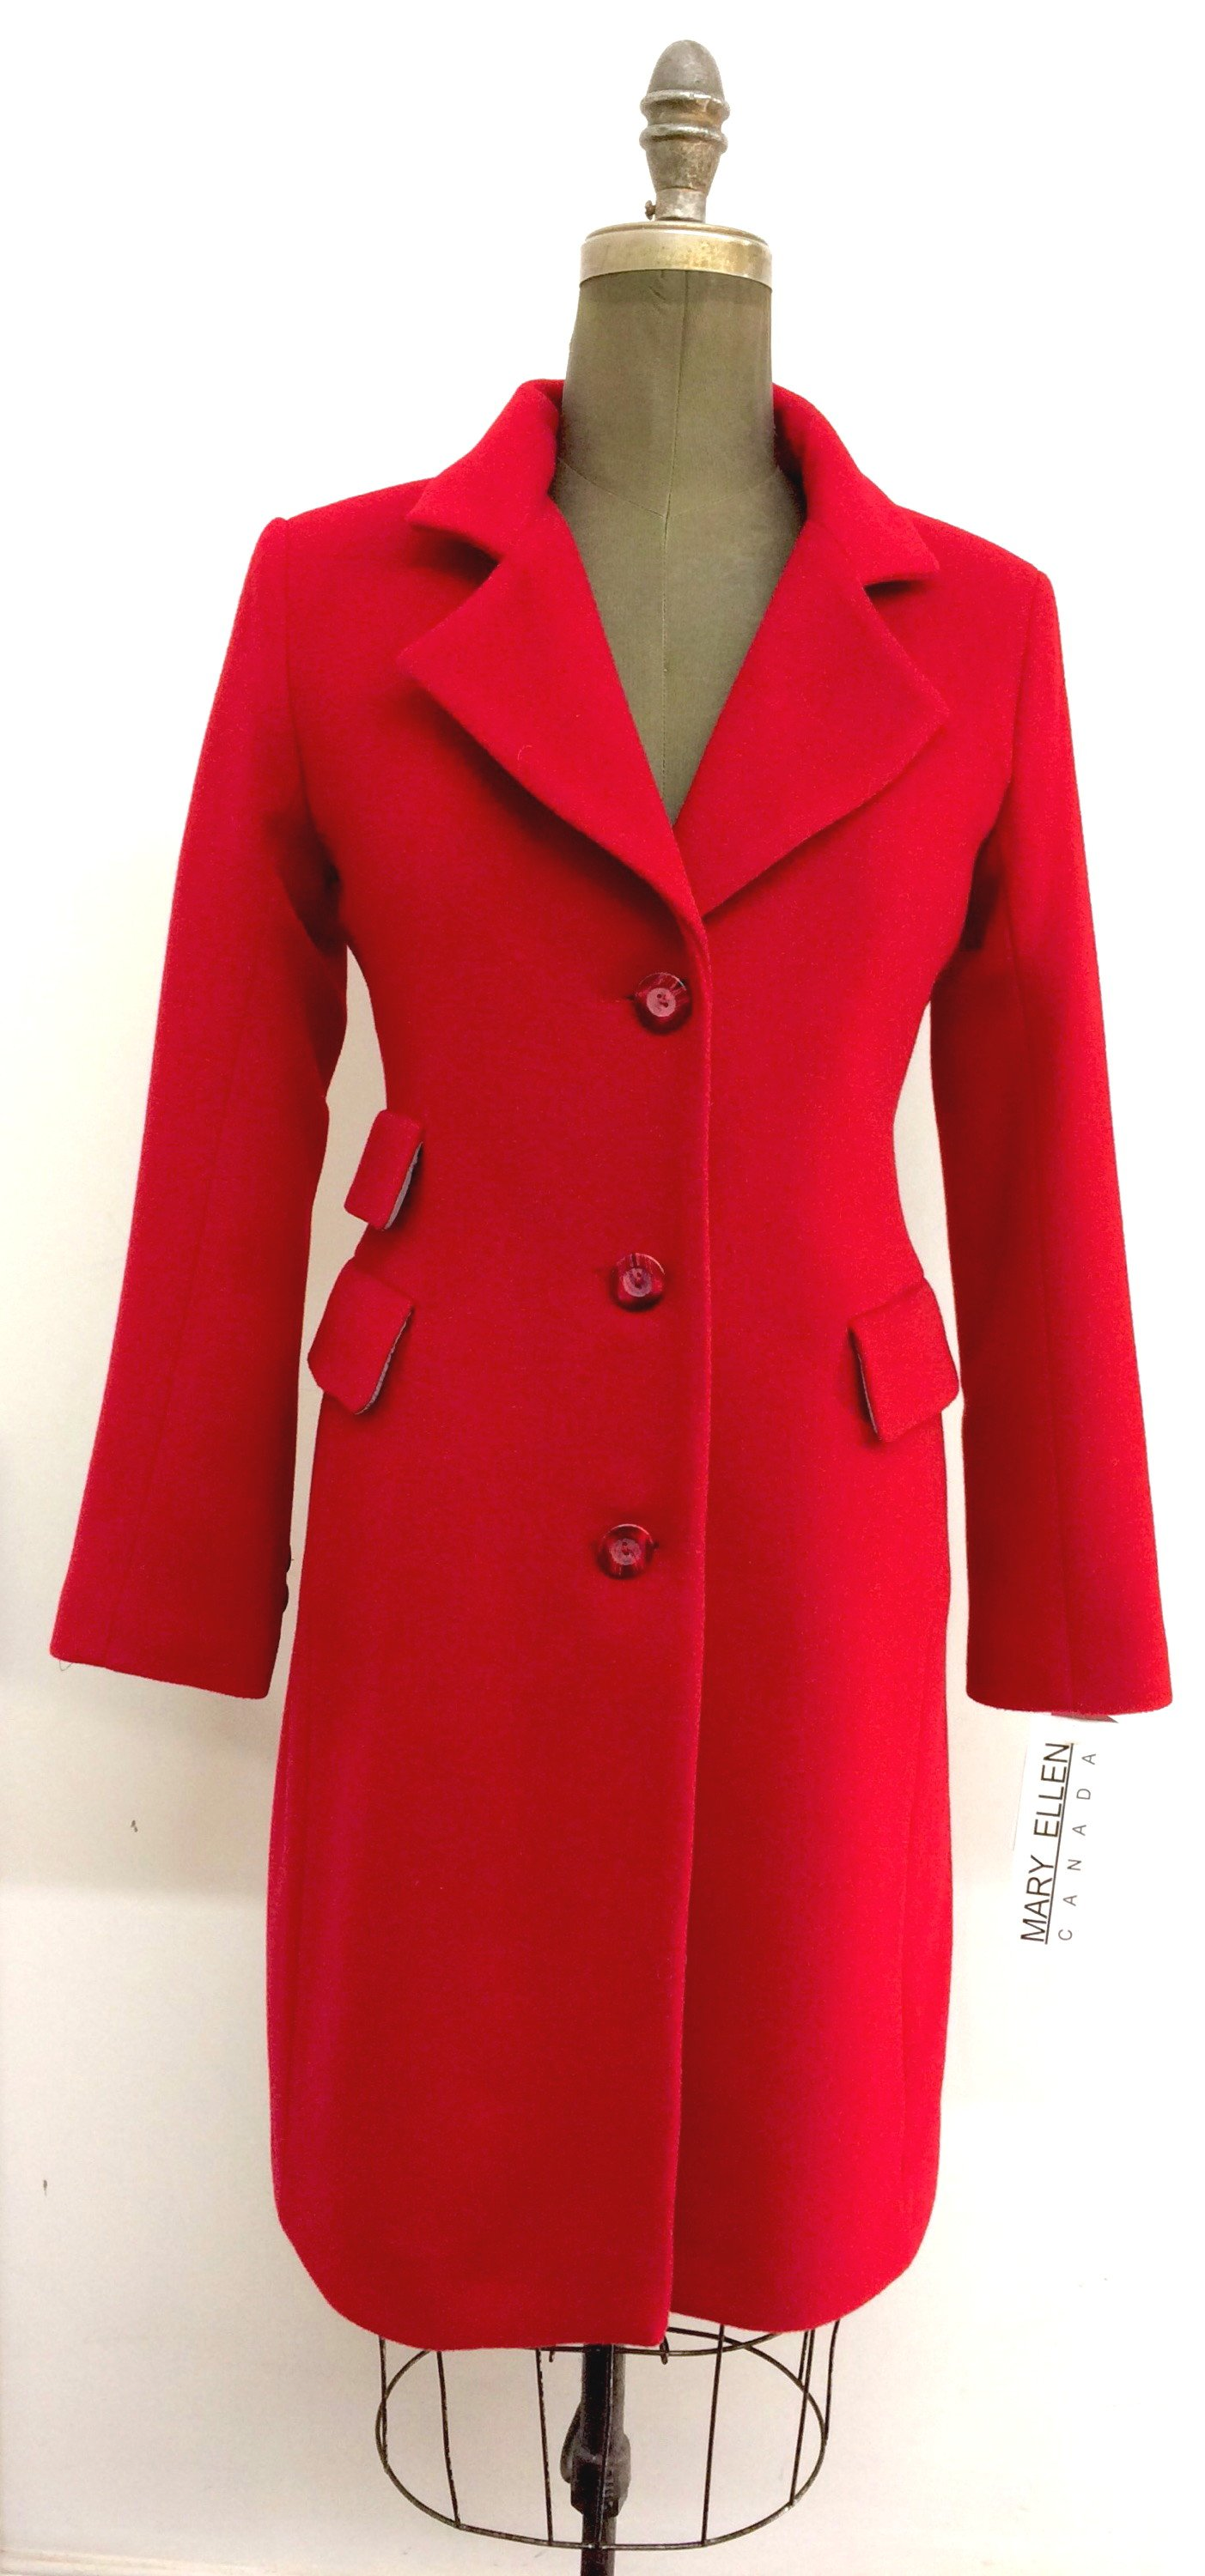 Style # LF1596-6  Ruby Red   Features:  British look,single breasted, triple pocket, knee length coat. Sleek clean lines, fitted through the waist.  Notched collar. Buttons dyed to match.  Various Fabrics:  Cashmere or Cashmere Blend, Alpaca,  100% Pure Virgin Wool and more  In-stock colours: Black, Ruby, Navy, Camel, Charcoal, Black/Pinstripe Blue or can be custom made in any colour or fabric.   Size: S,M,L  Price: $ 449 and up